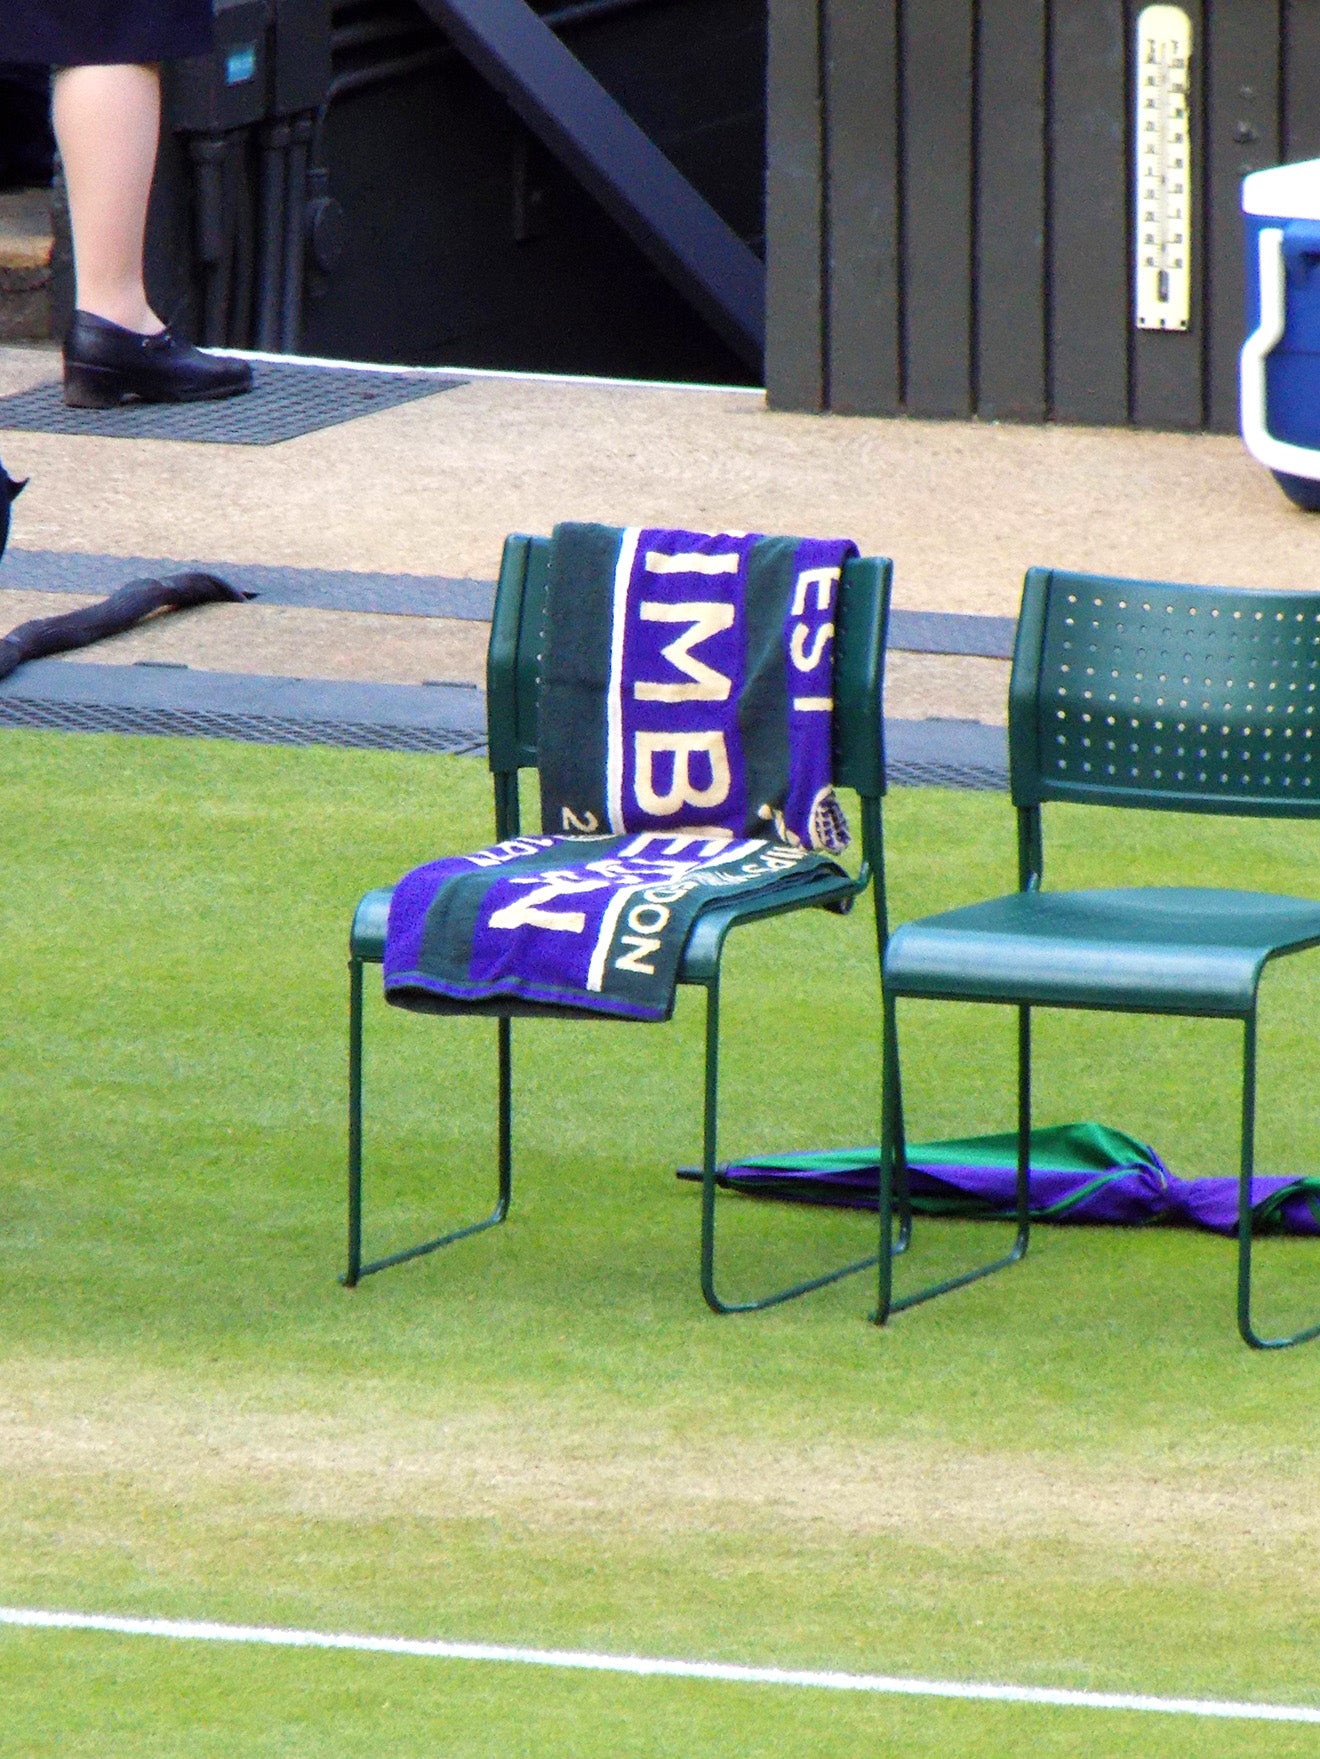 Wimbledon official mens towel on centre court